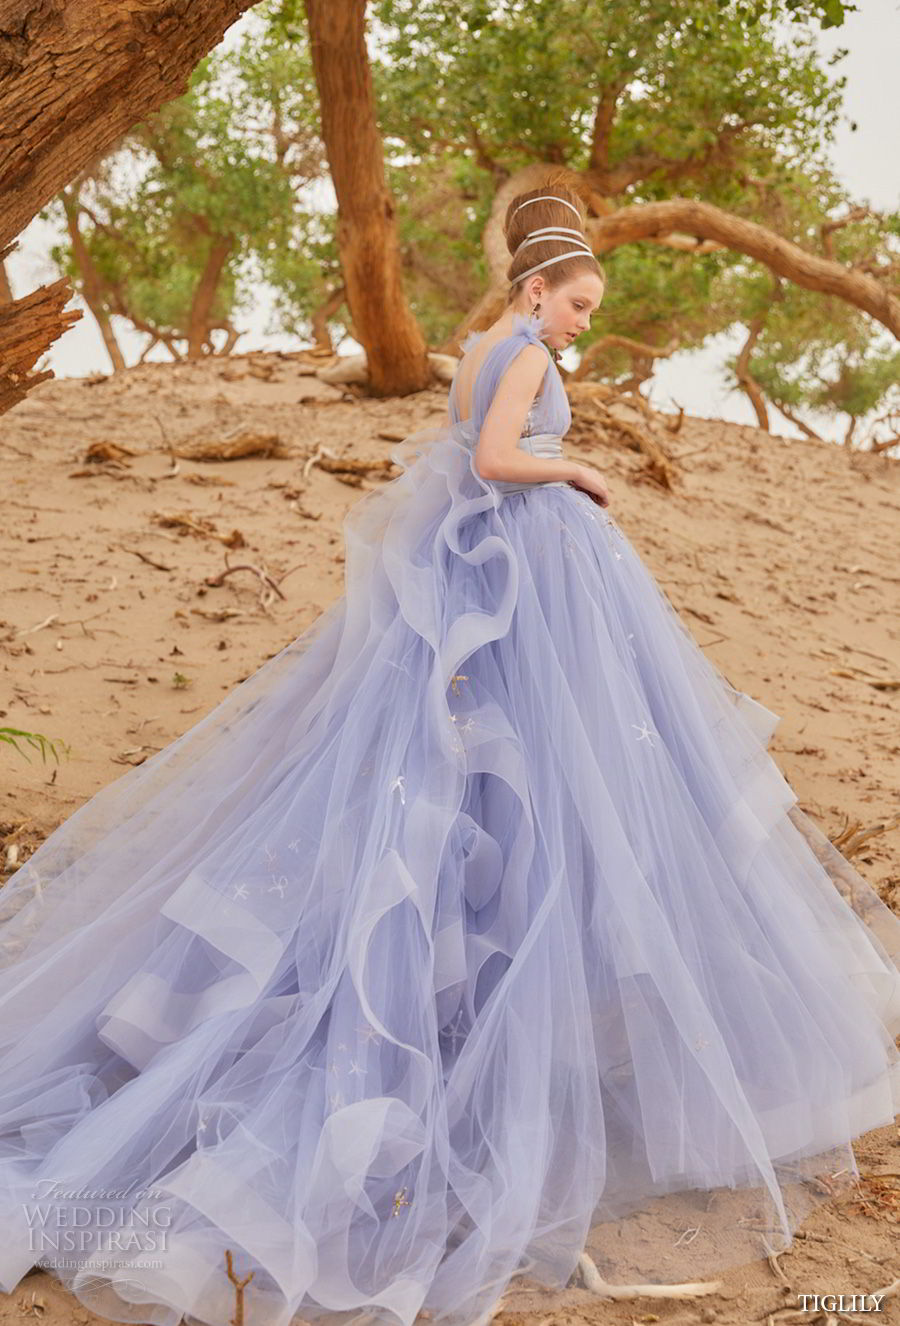 tiglily 2018 bridal purpose purple color wedding gown (mia) mv